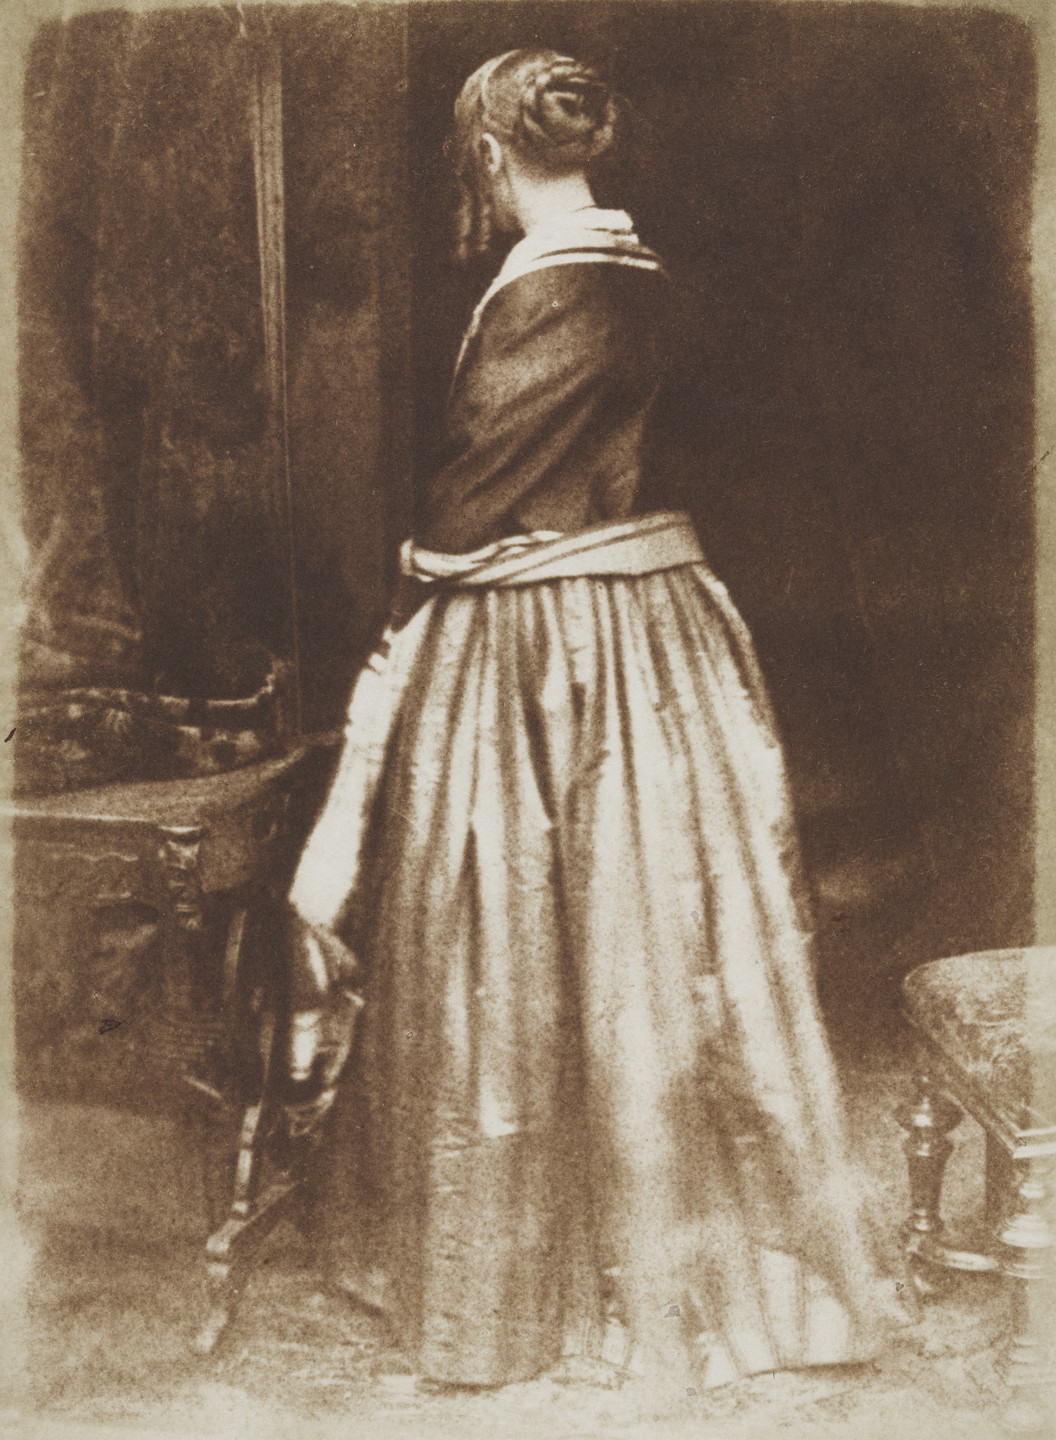 David Octavius Hill, Robert Adamson. Mrs. Murray. 1847